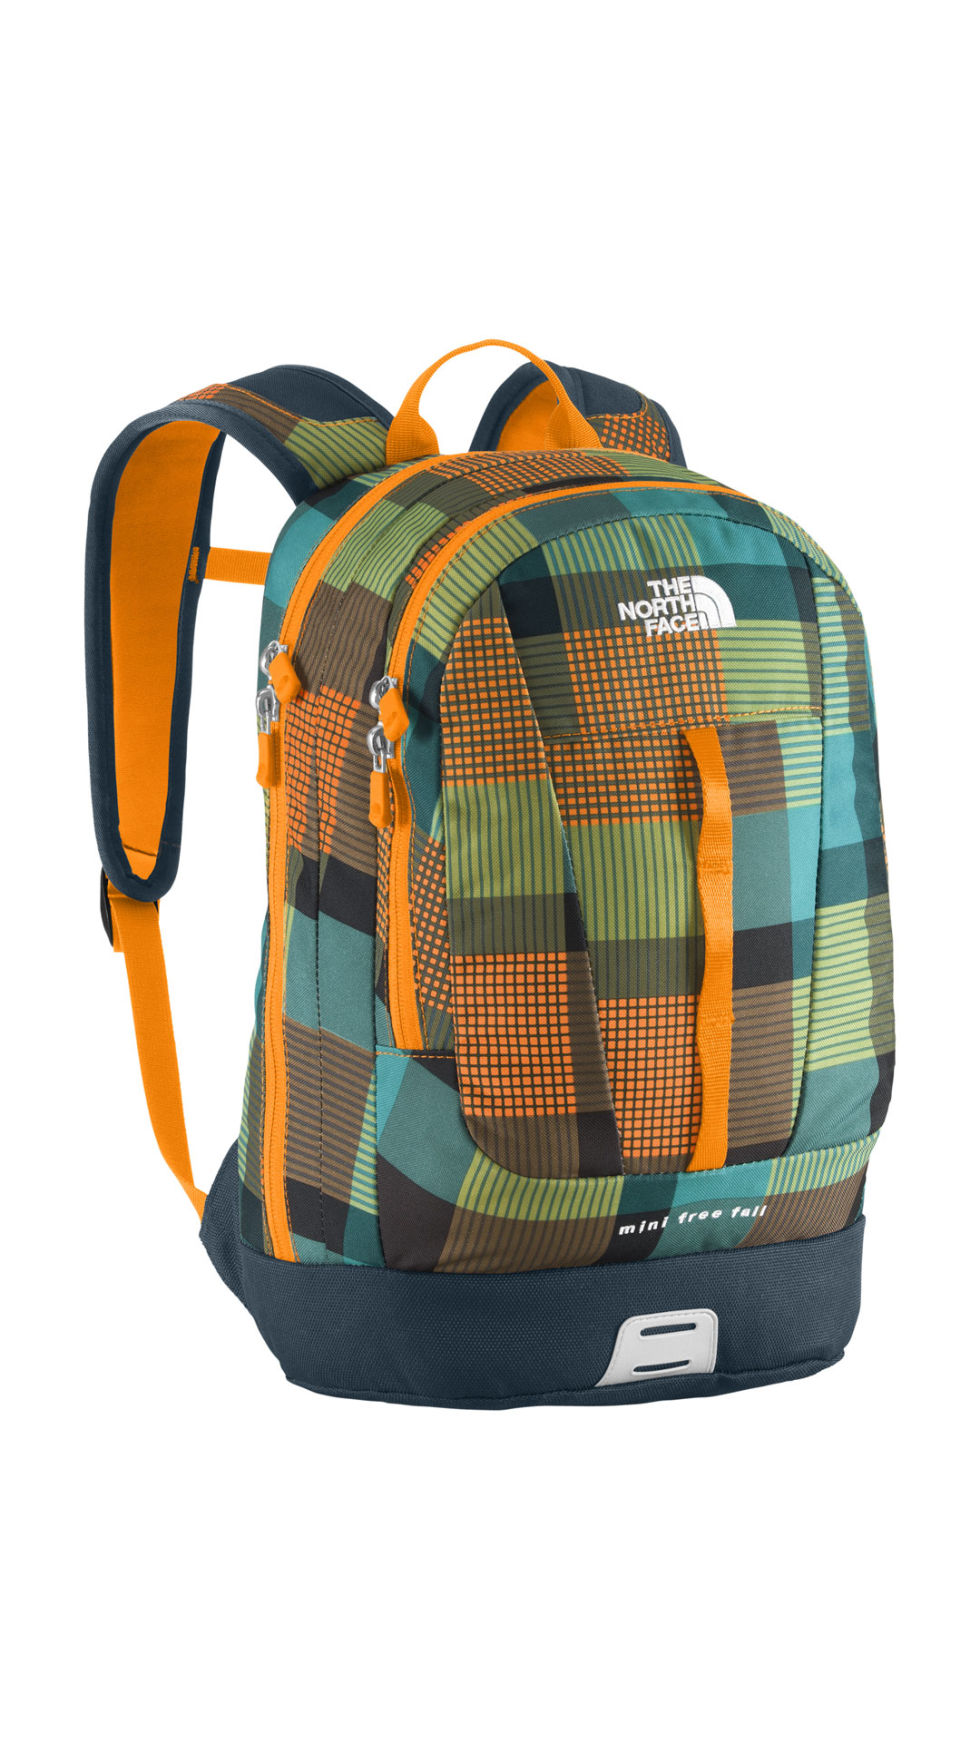 Boys School Backpacks HTC8uYXd